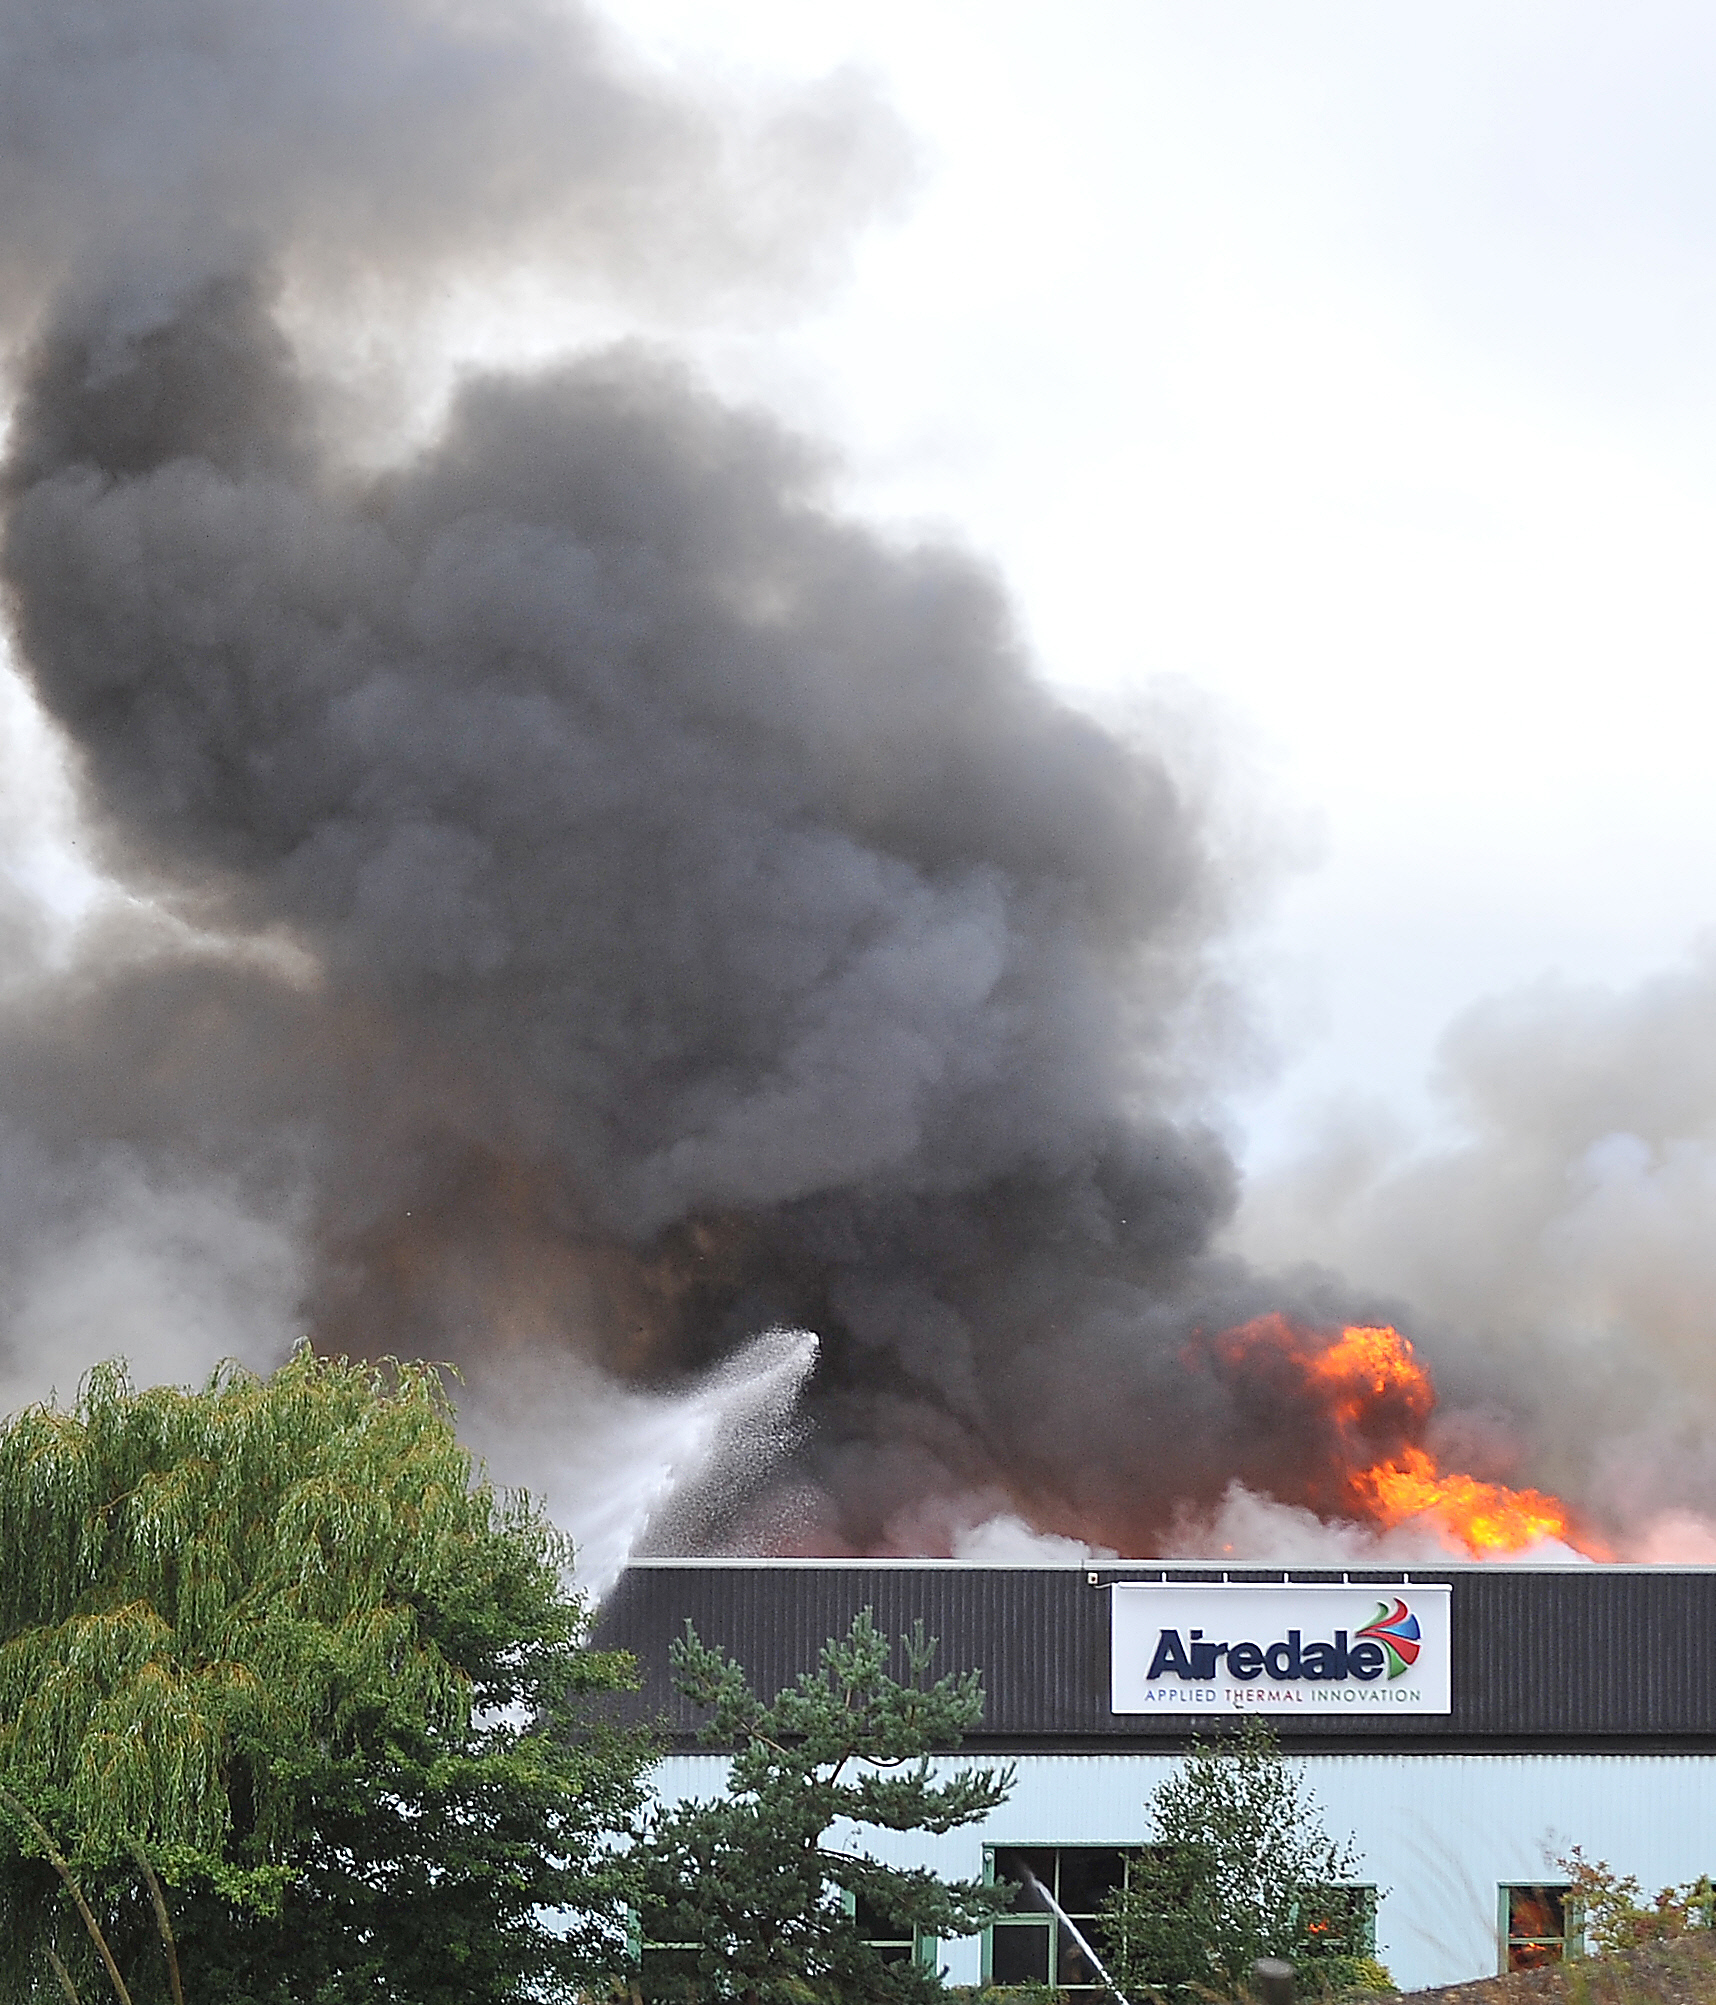 In September 2013 a huge blaze took hold at the Airedale Air Conditioning factory in Rawdon. Plumes of smoke could be seen for miles around. Nearby homes and businesses were evacuated as 100 firefighters tackled the blaze.